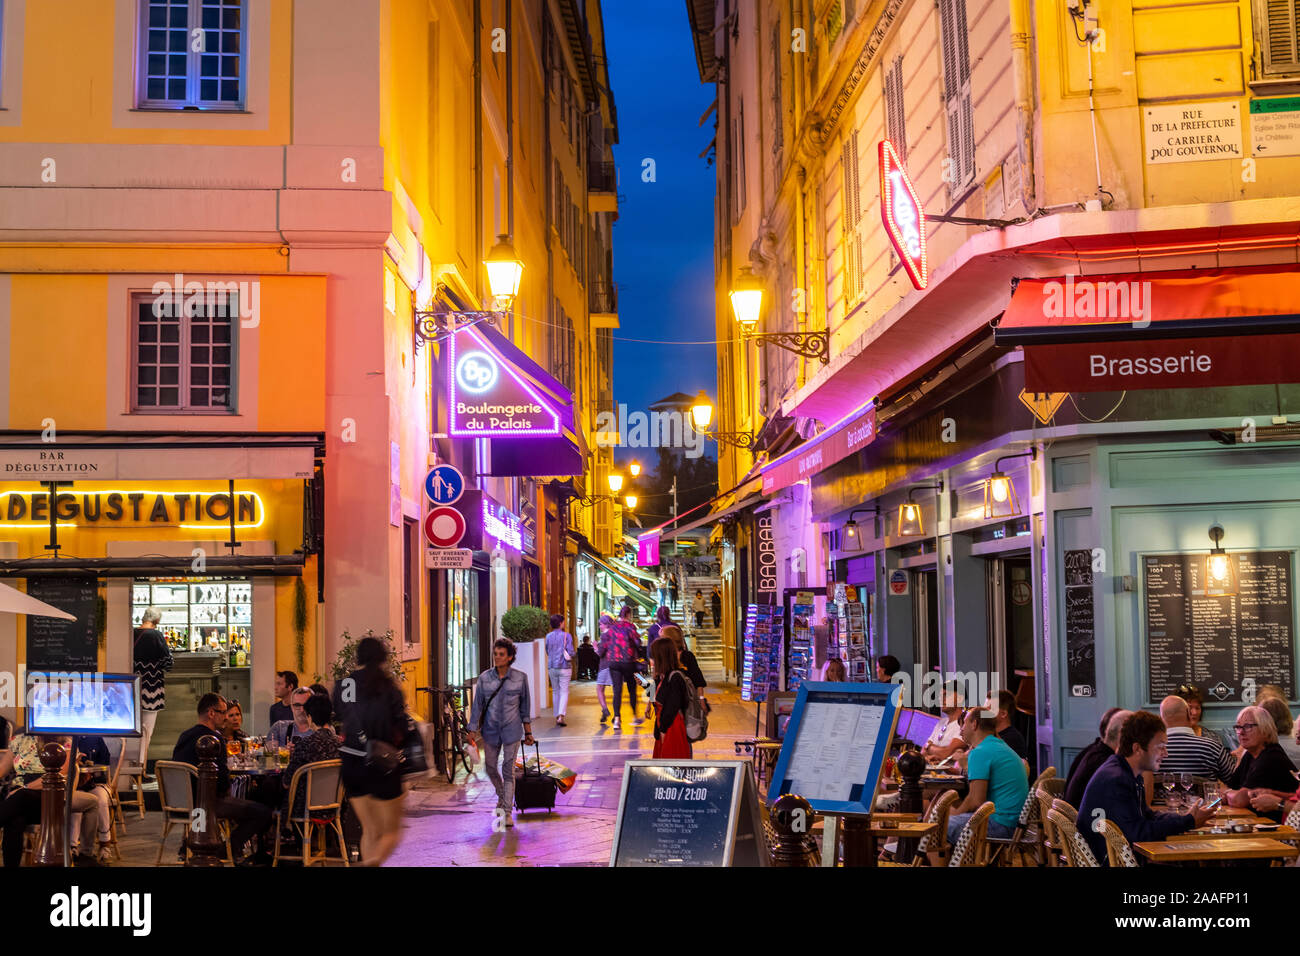 Colorful night view of tourists and local French enjoying sidewalk cafes in the old town Vieux Nice area of Nice, France. Stock Photo